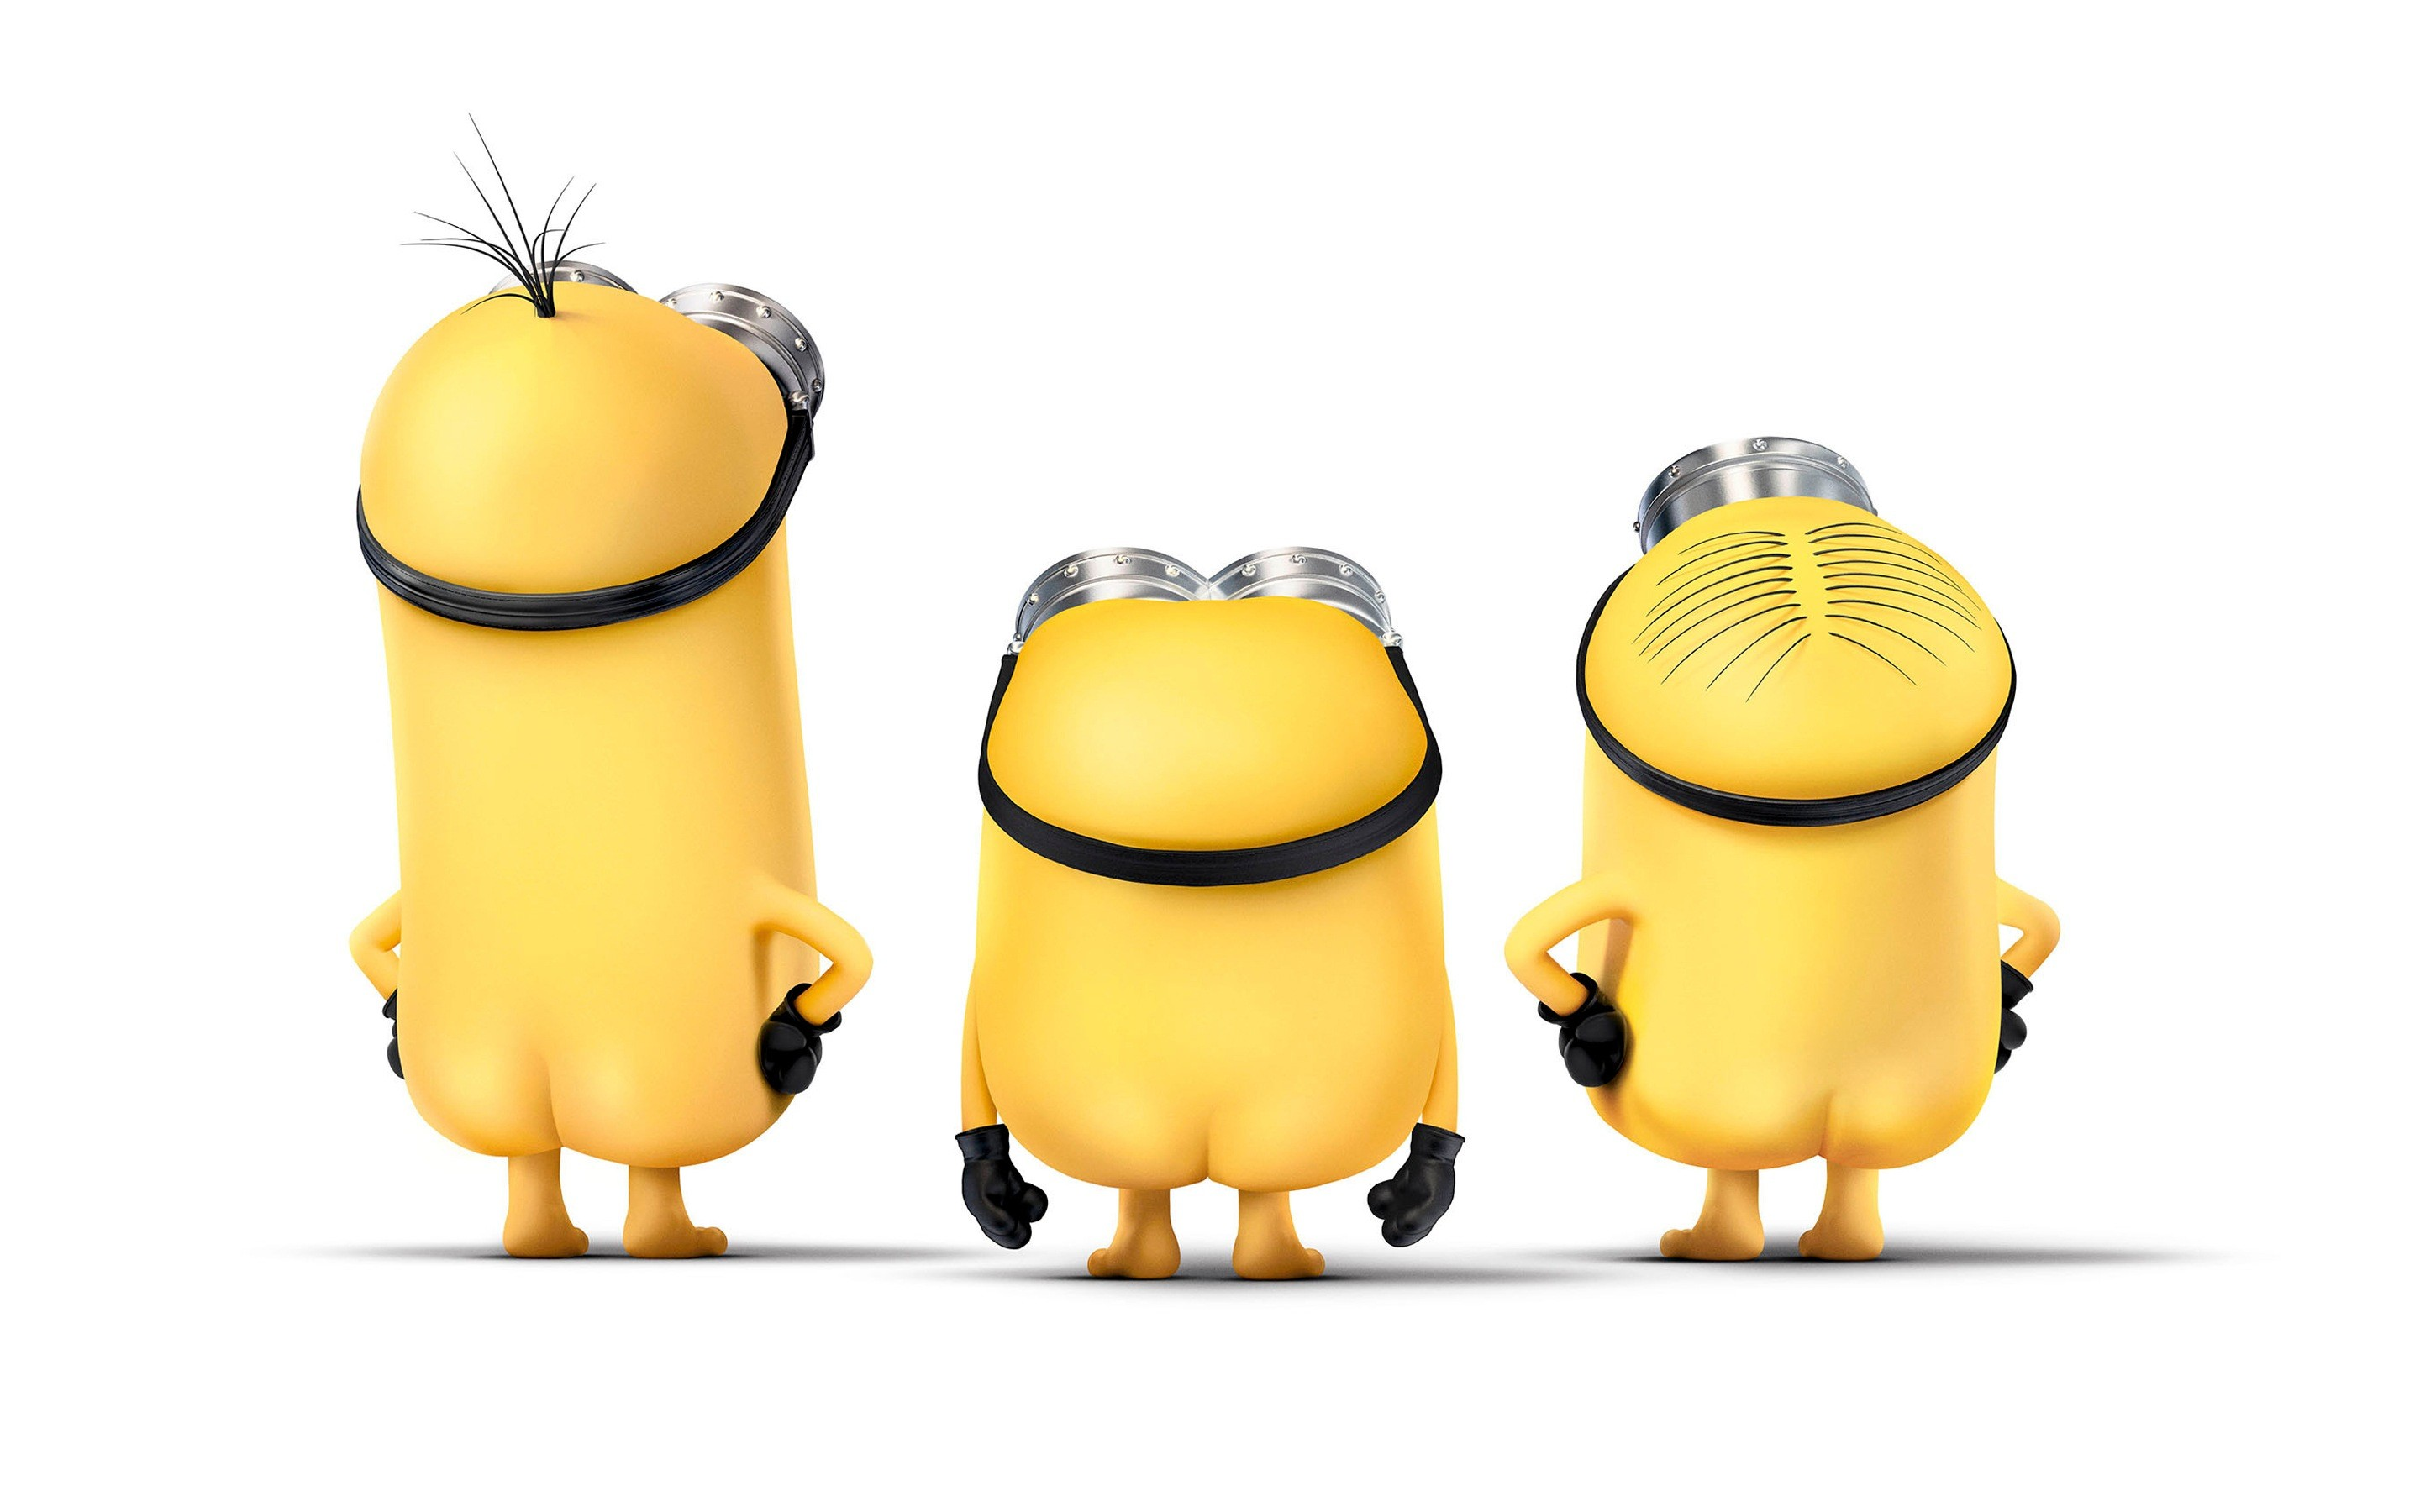 king bob minion wallpaper (71+ images)